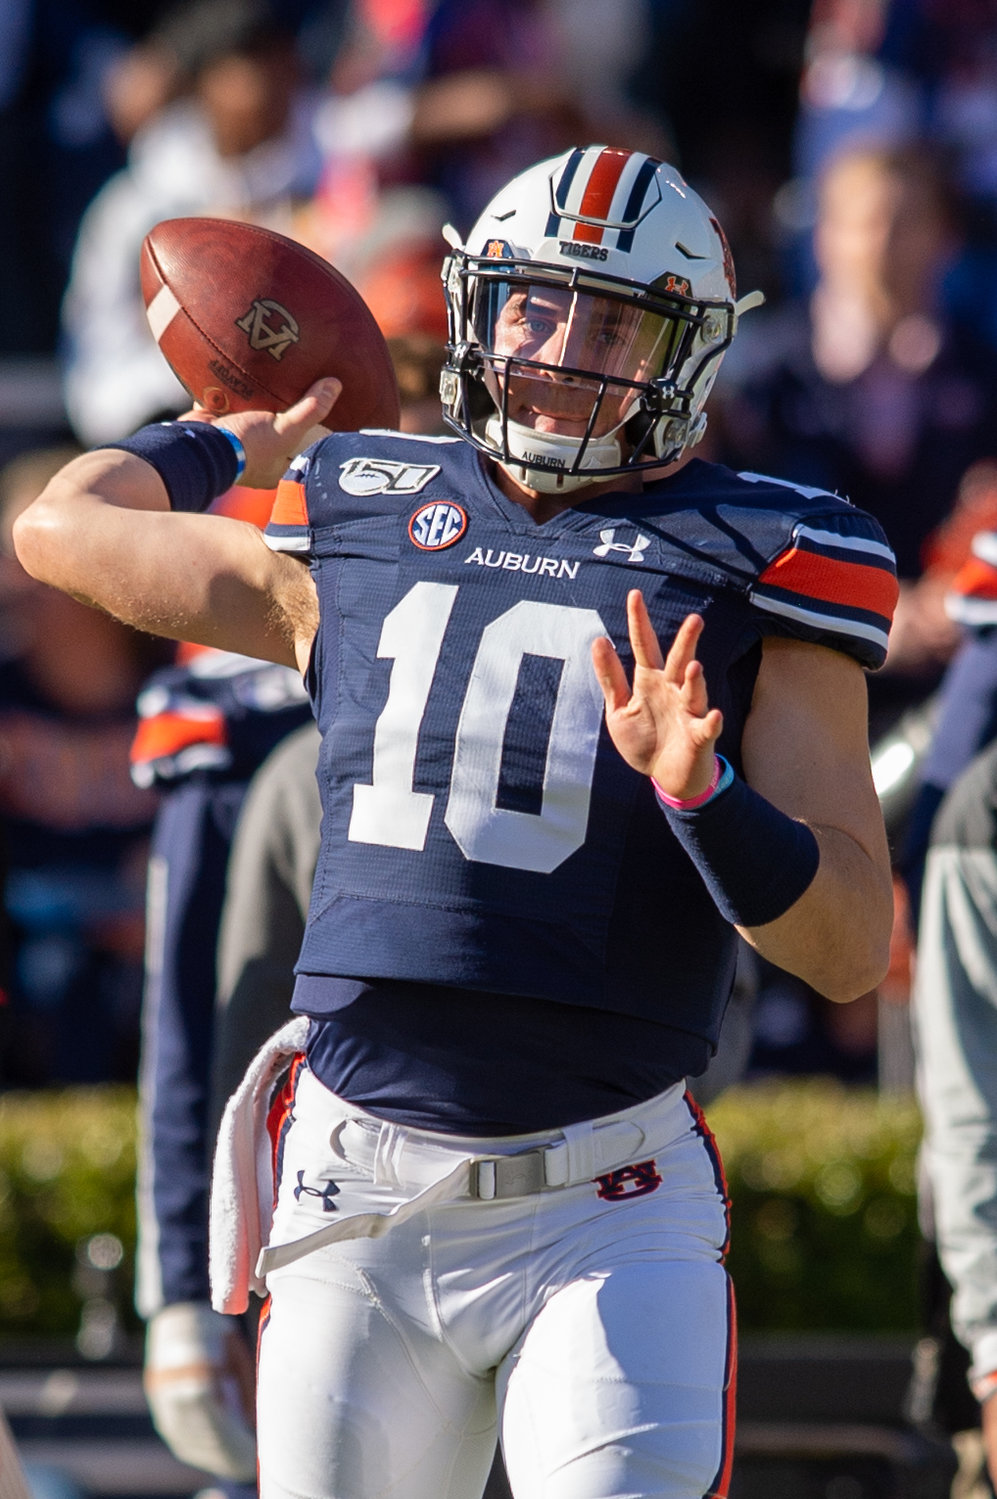 Auburn Tigers quarterback Bo Nix (10) warms up before Saturday's game against Georgia, at Jordan-Hare Stadium in Auburn,, AL. Daily Mountain Eagle -  Jeff Johnsey